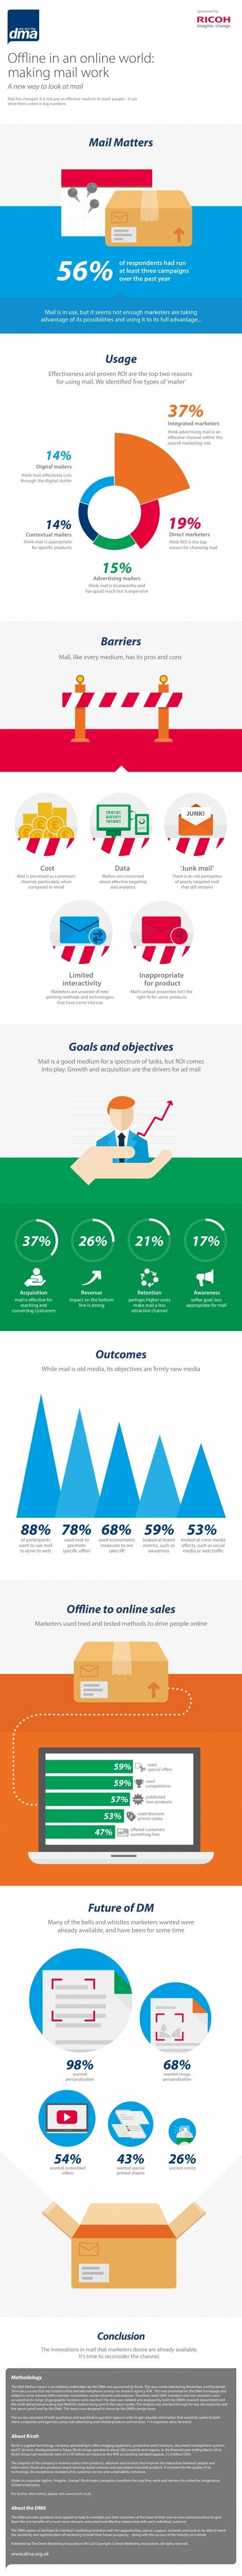 DMA and Ricoh - Mail Matters Infographics